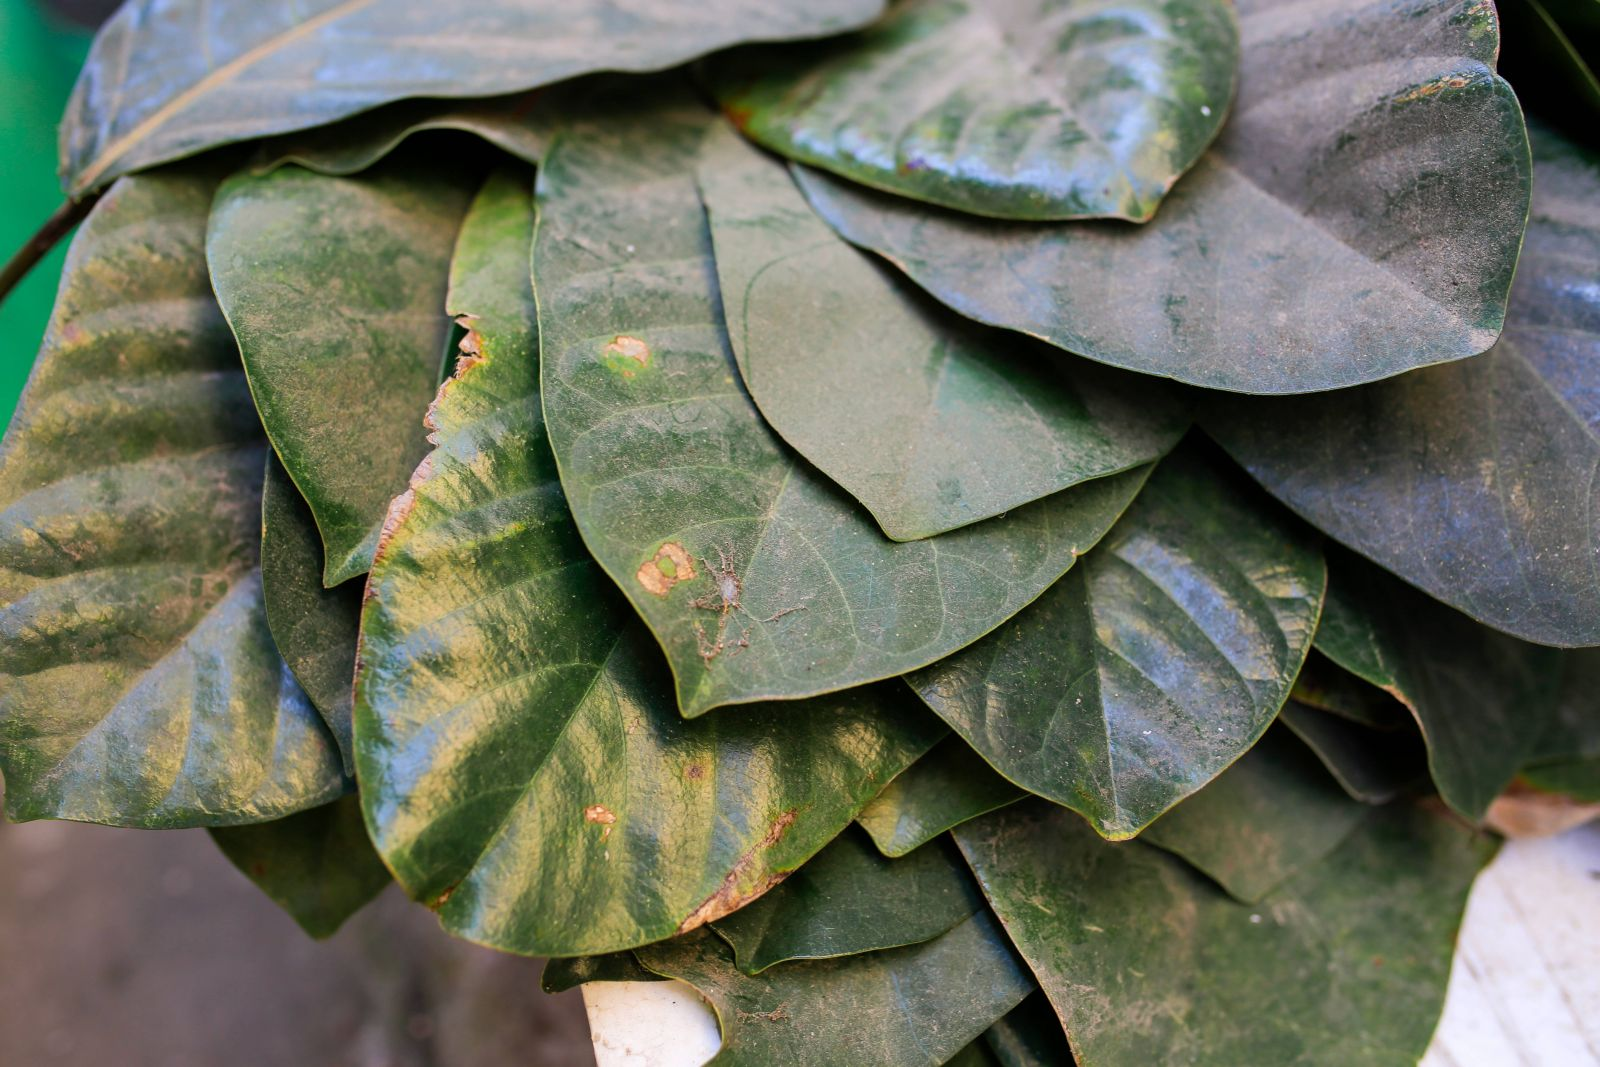 Mr. Hung spent more than a year to find out the suitable leaves. After testing many kinds of leaves, the suitable ones are the leaves of Terminalia catappa from Binh Dien Mountain, and Sri Lanka Bodhi leaves.